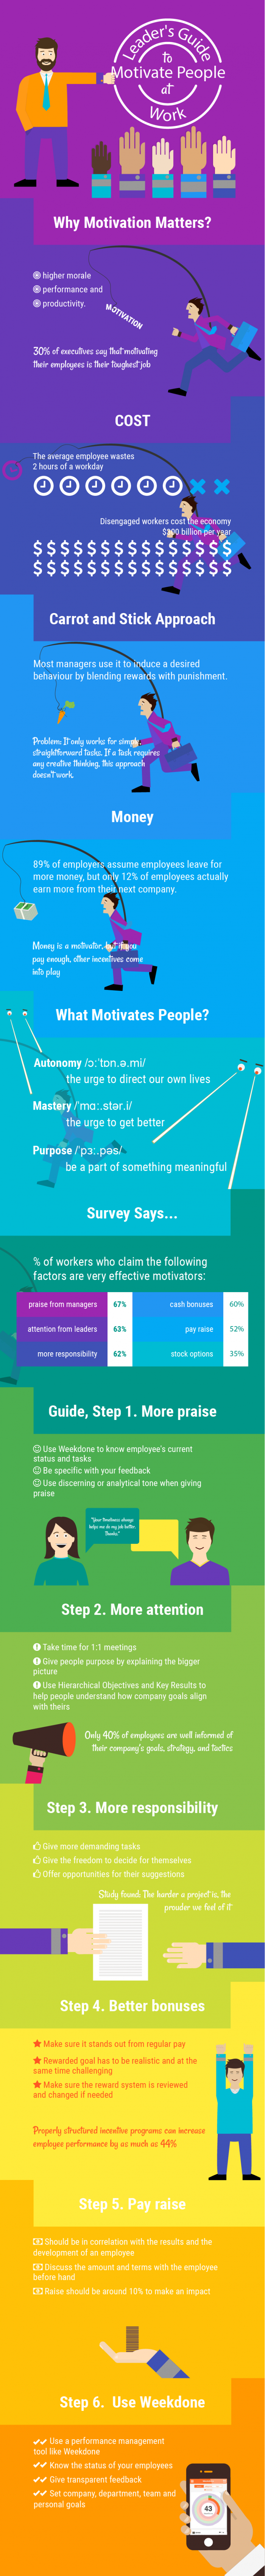 Leader's guide to motivate people at work